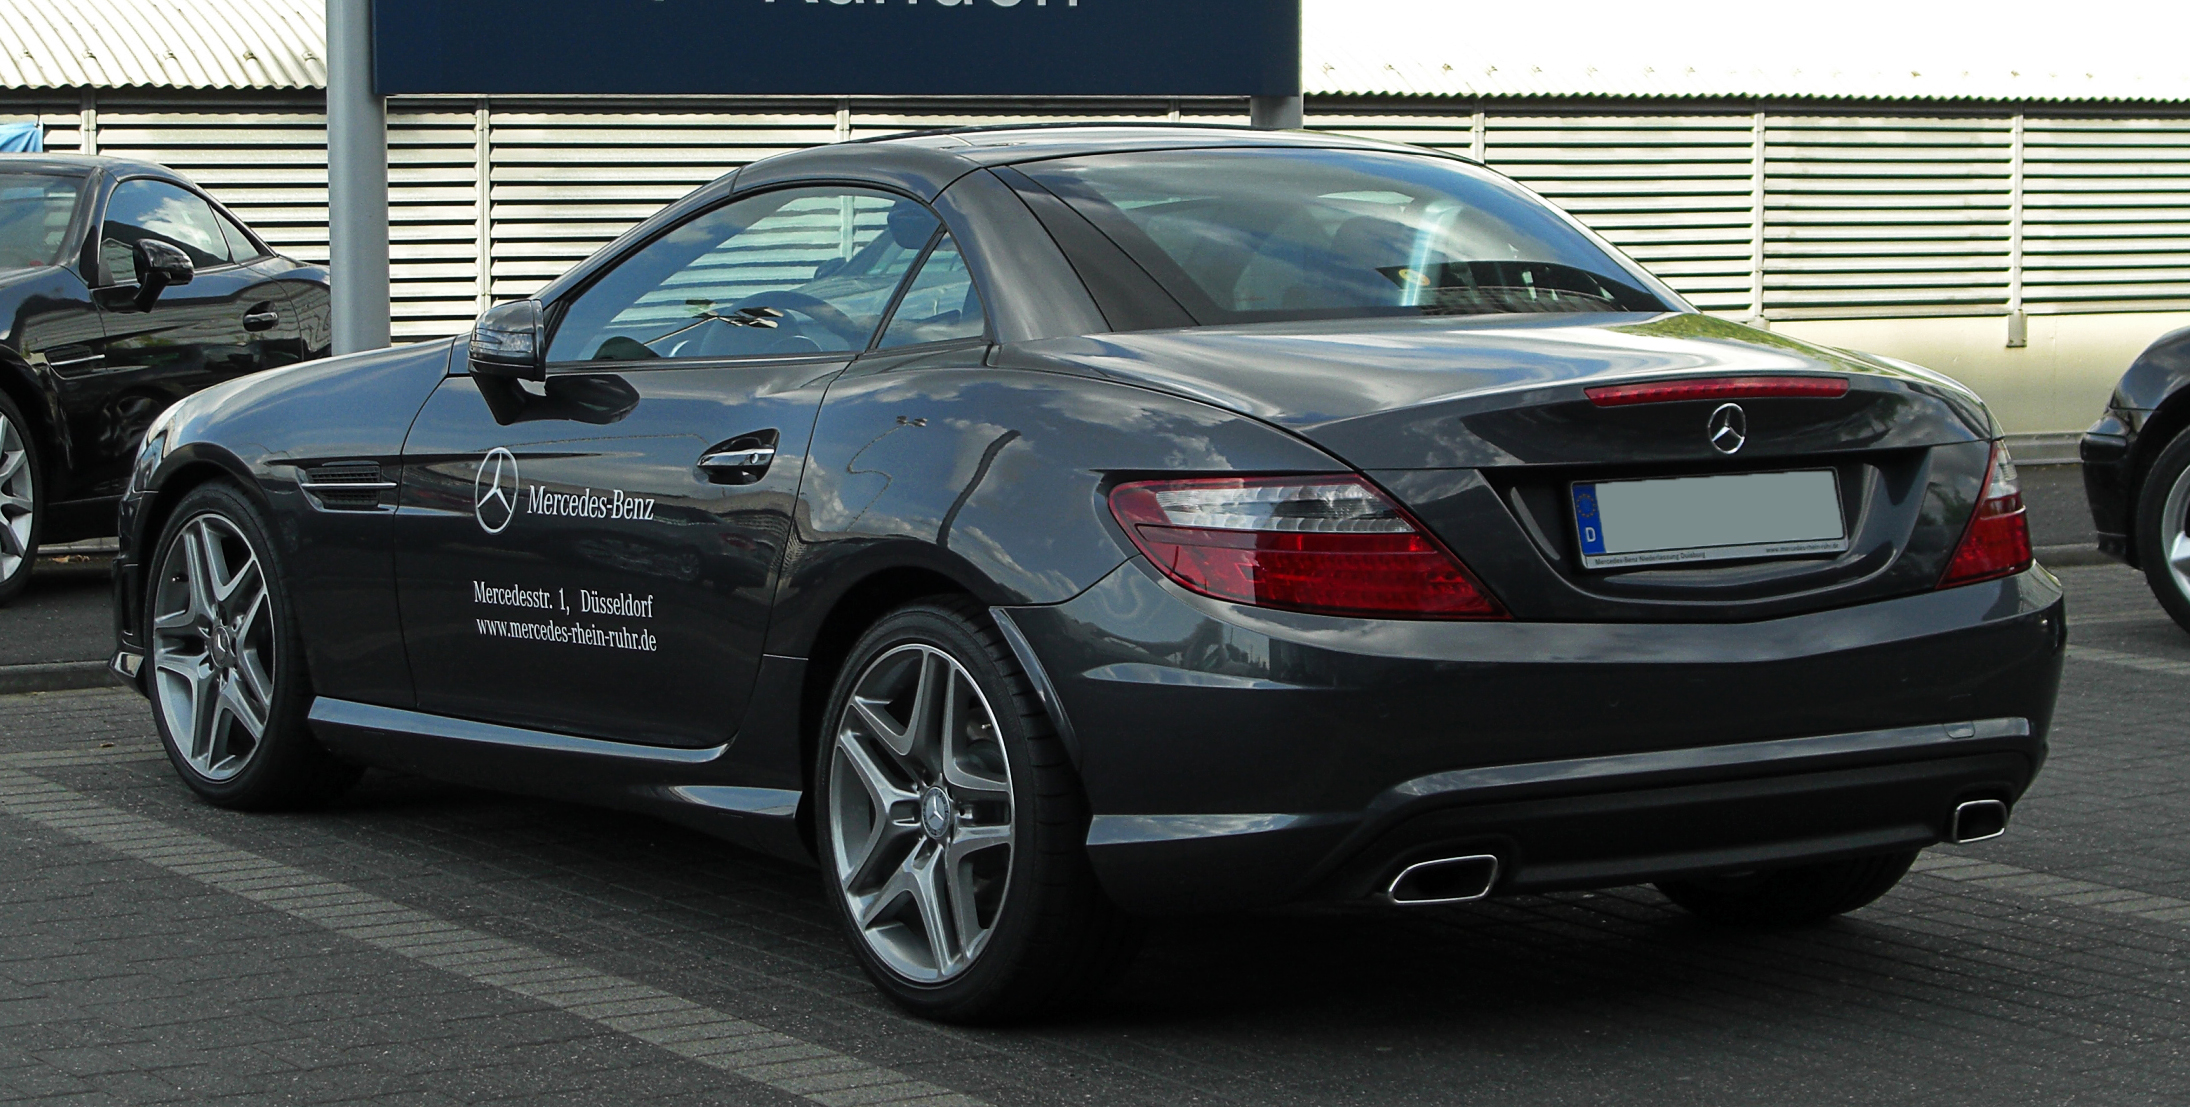 mercedes-benz slk 350 blueefficiency-pic. 1